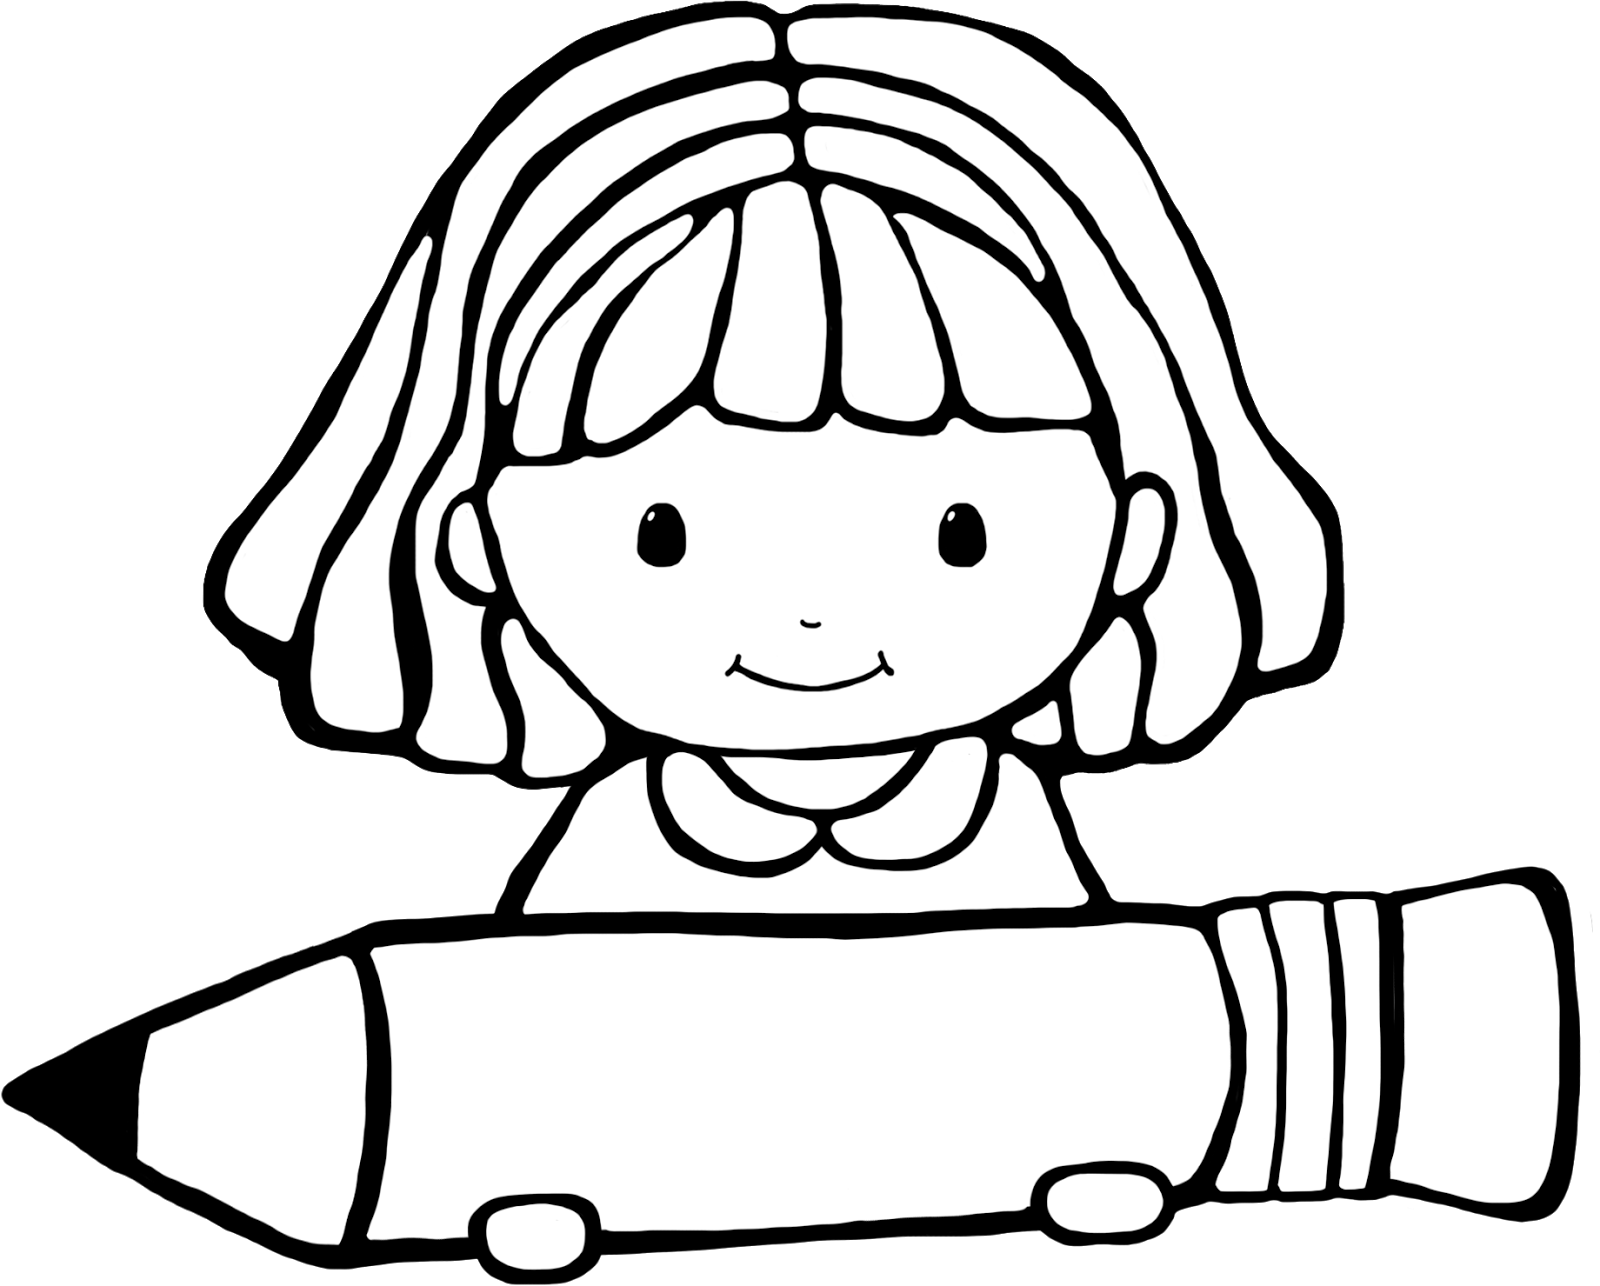 library Writer clipart little girl student. Drawing at getdrawings com